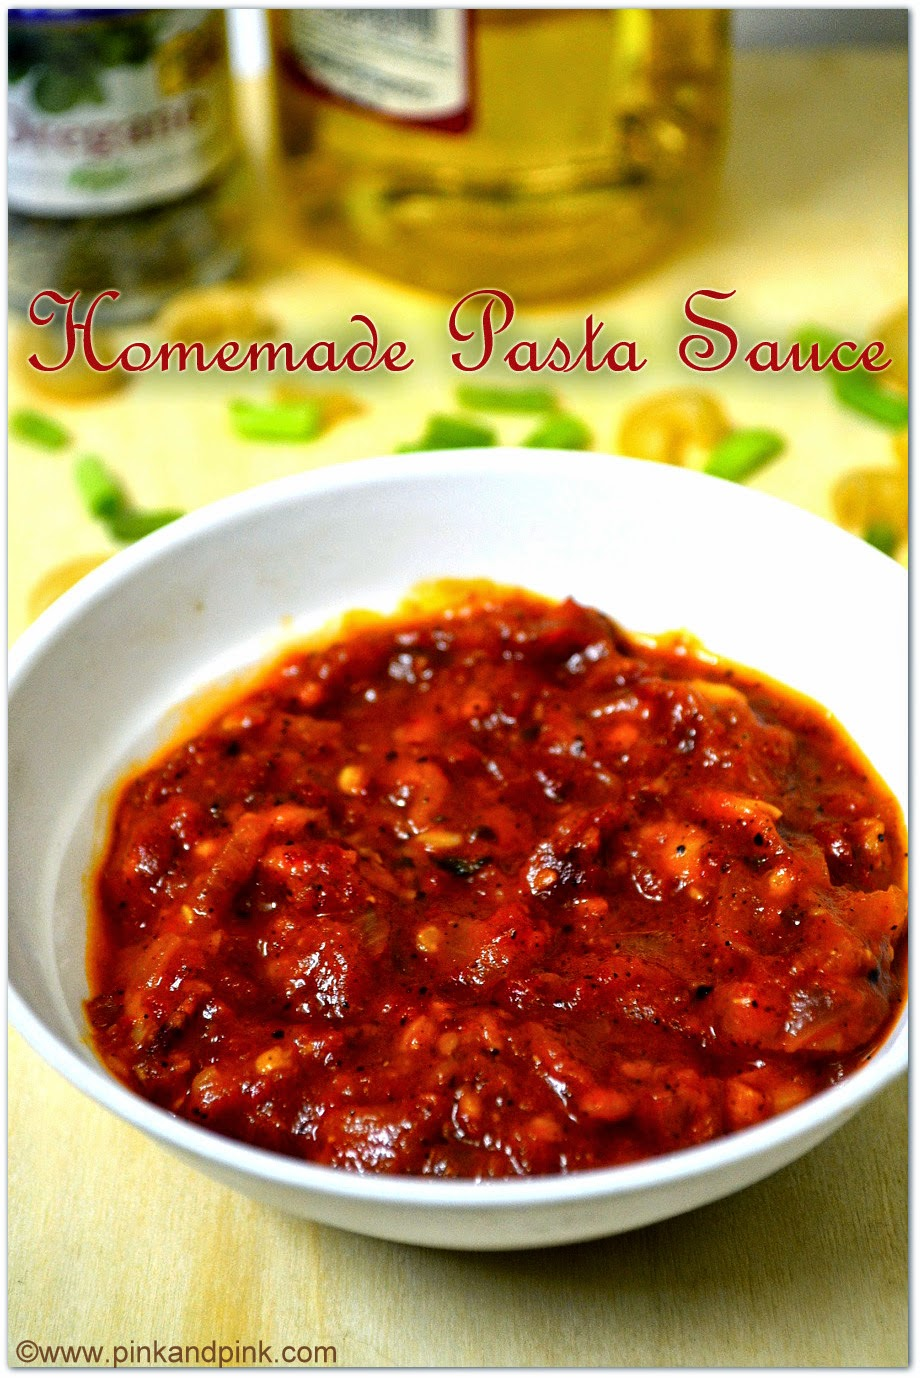 how to make tomato sauce at home in hindi